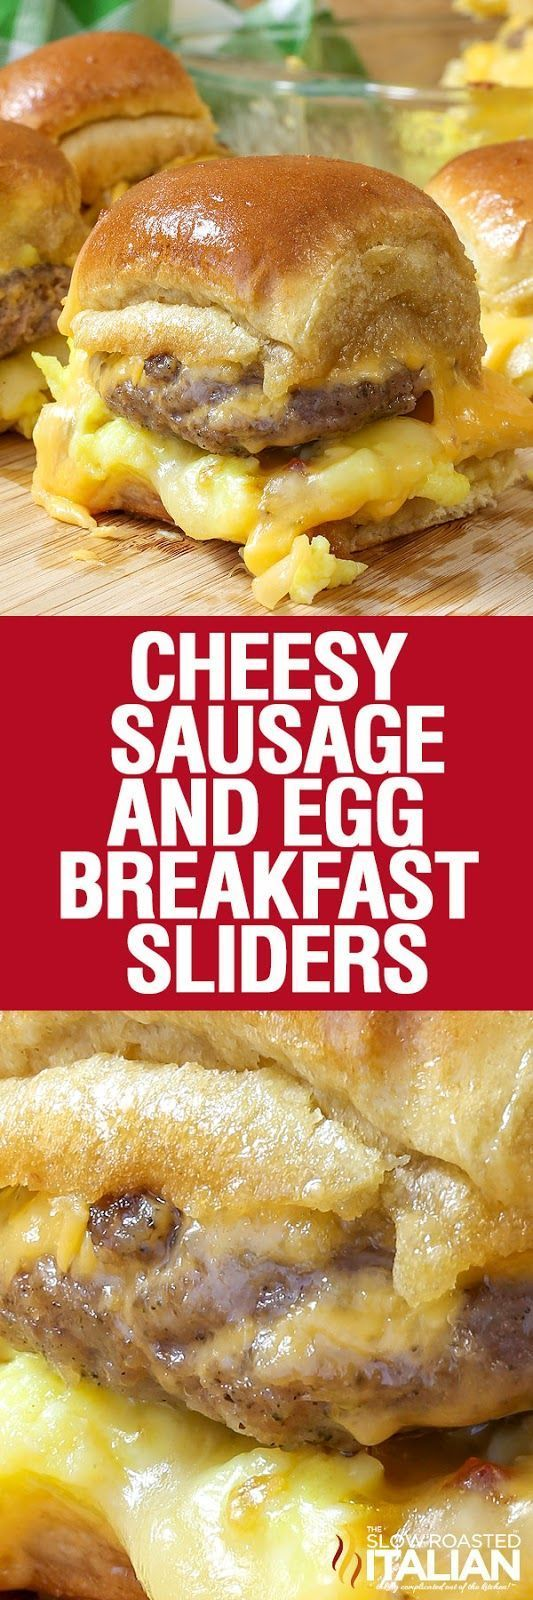 Cheesy Sausage and Egg Breakfast Sliders Recipe - CUCINA DE YUNG